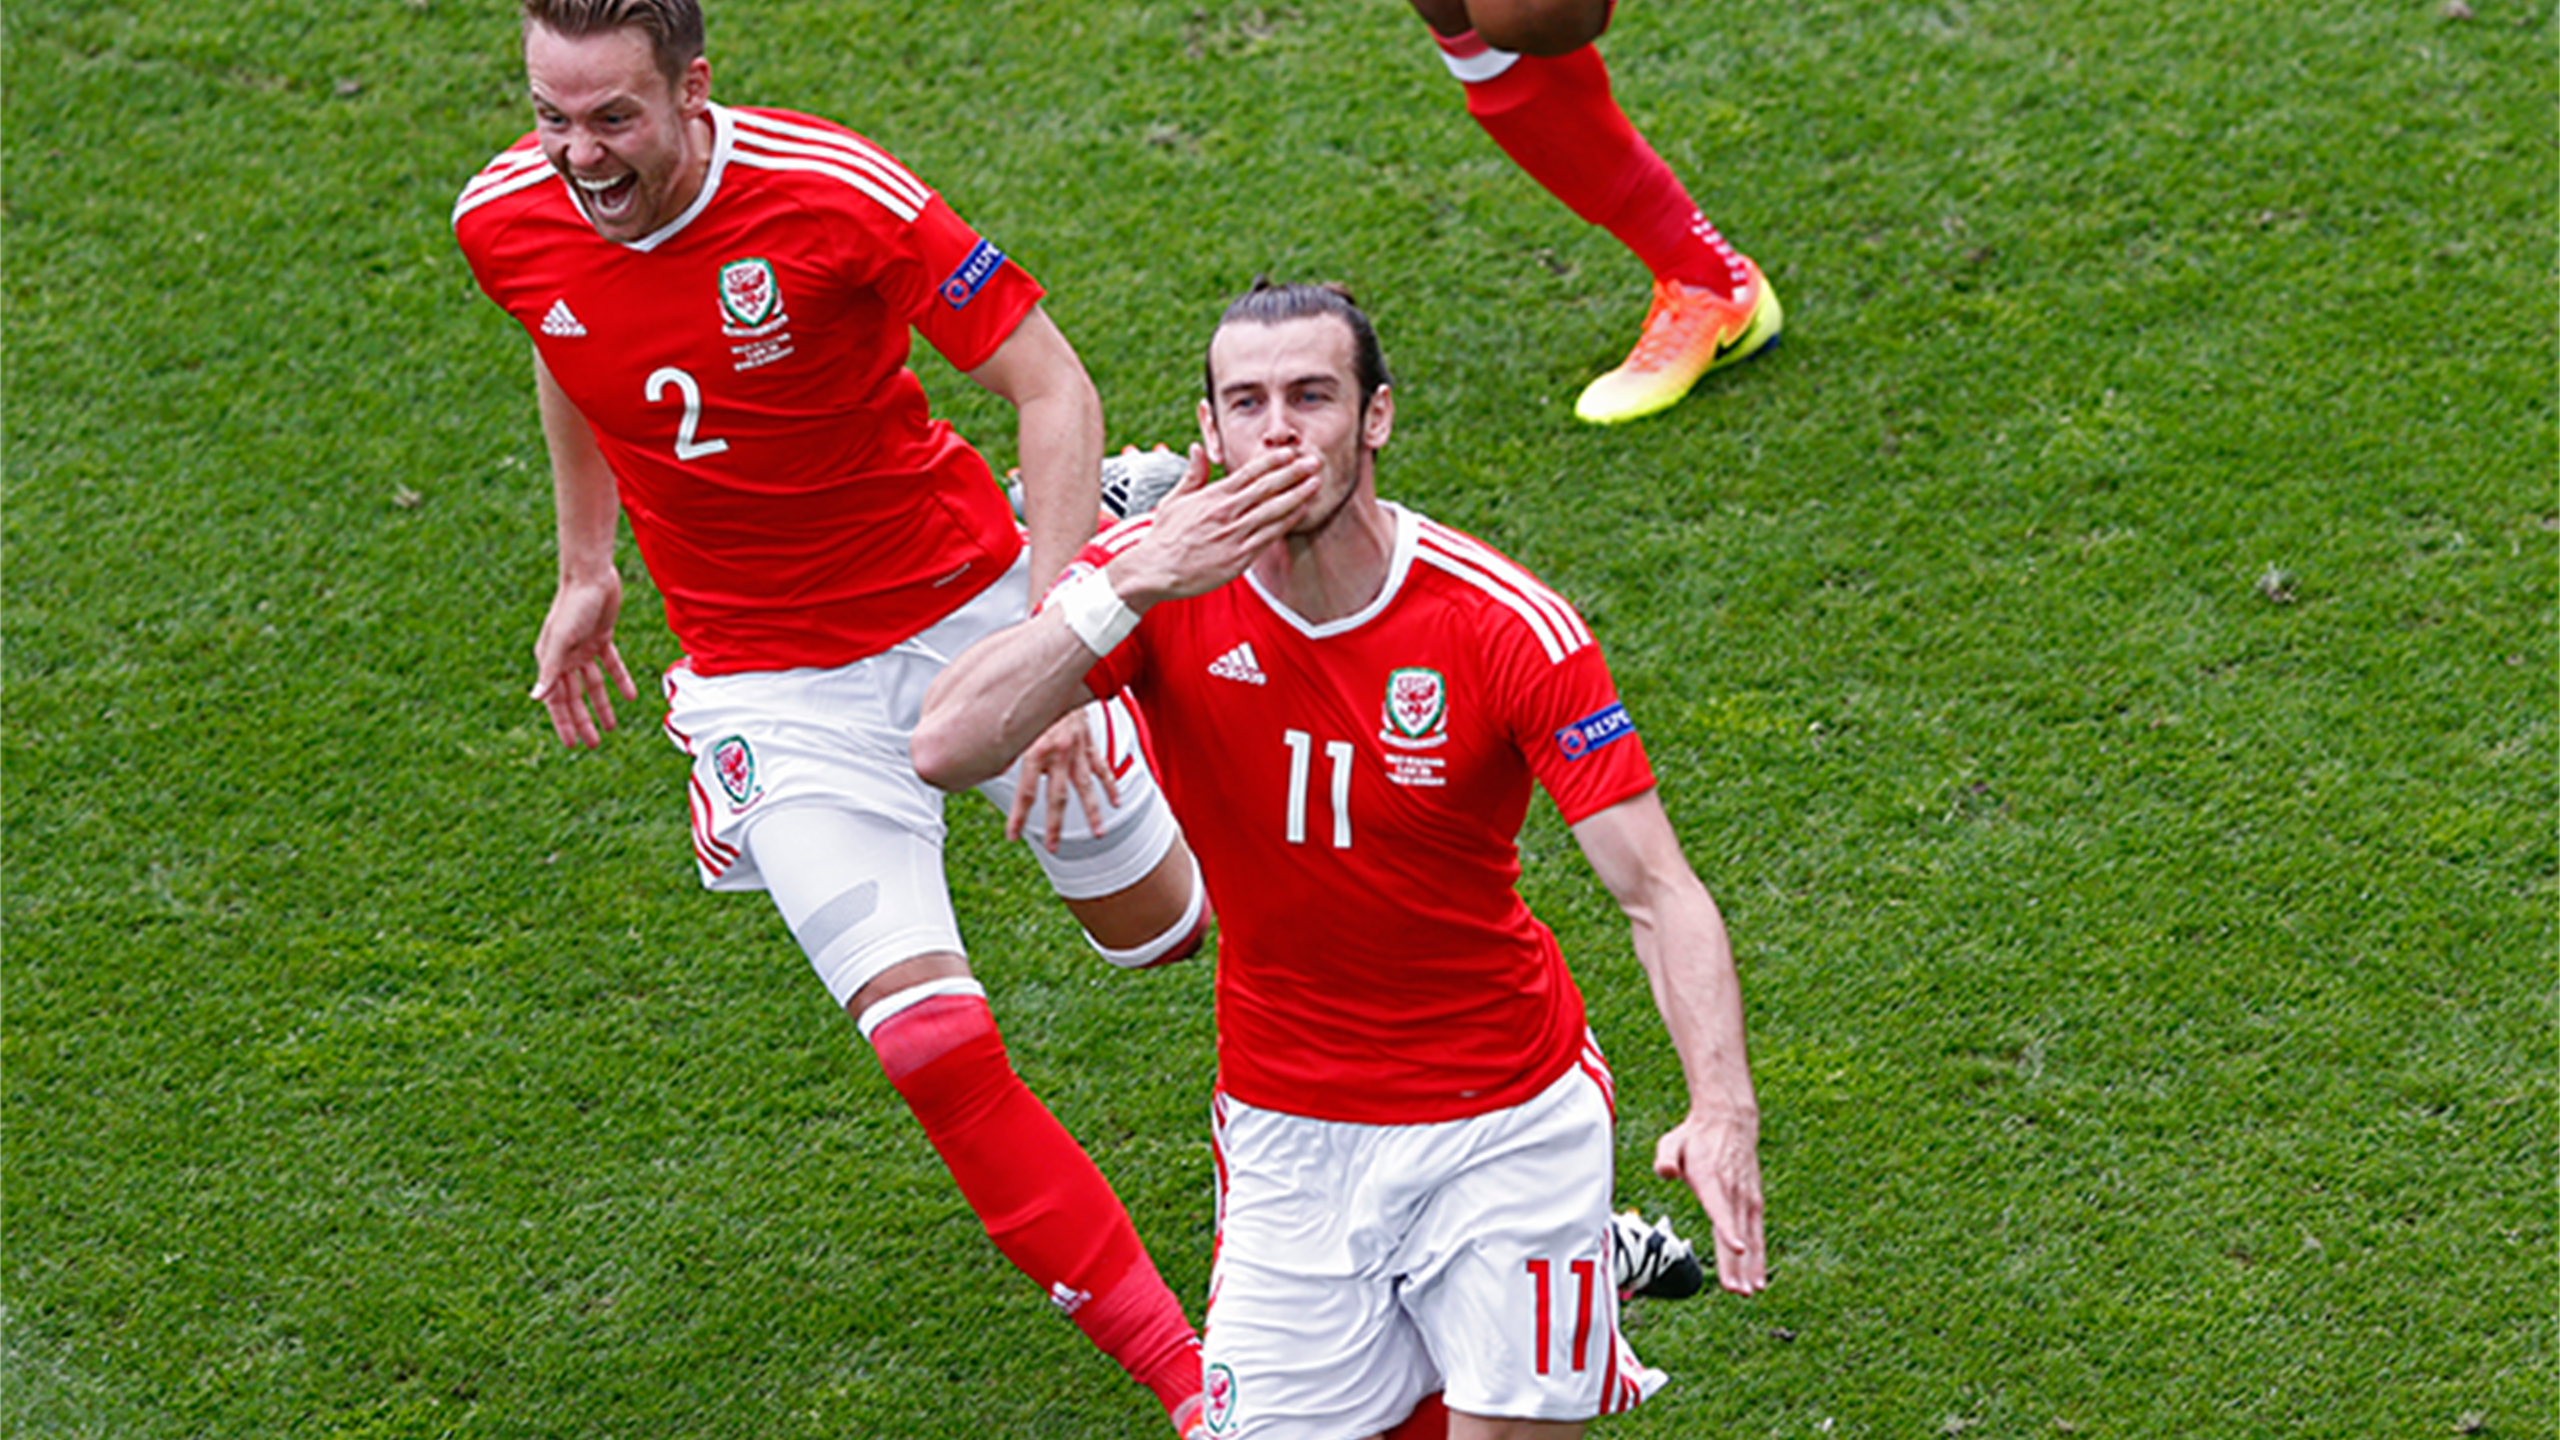 Wales' Gareth Bale celebrates scoring for Wales against Slovakia